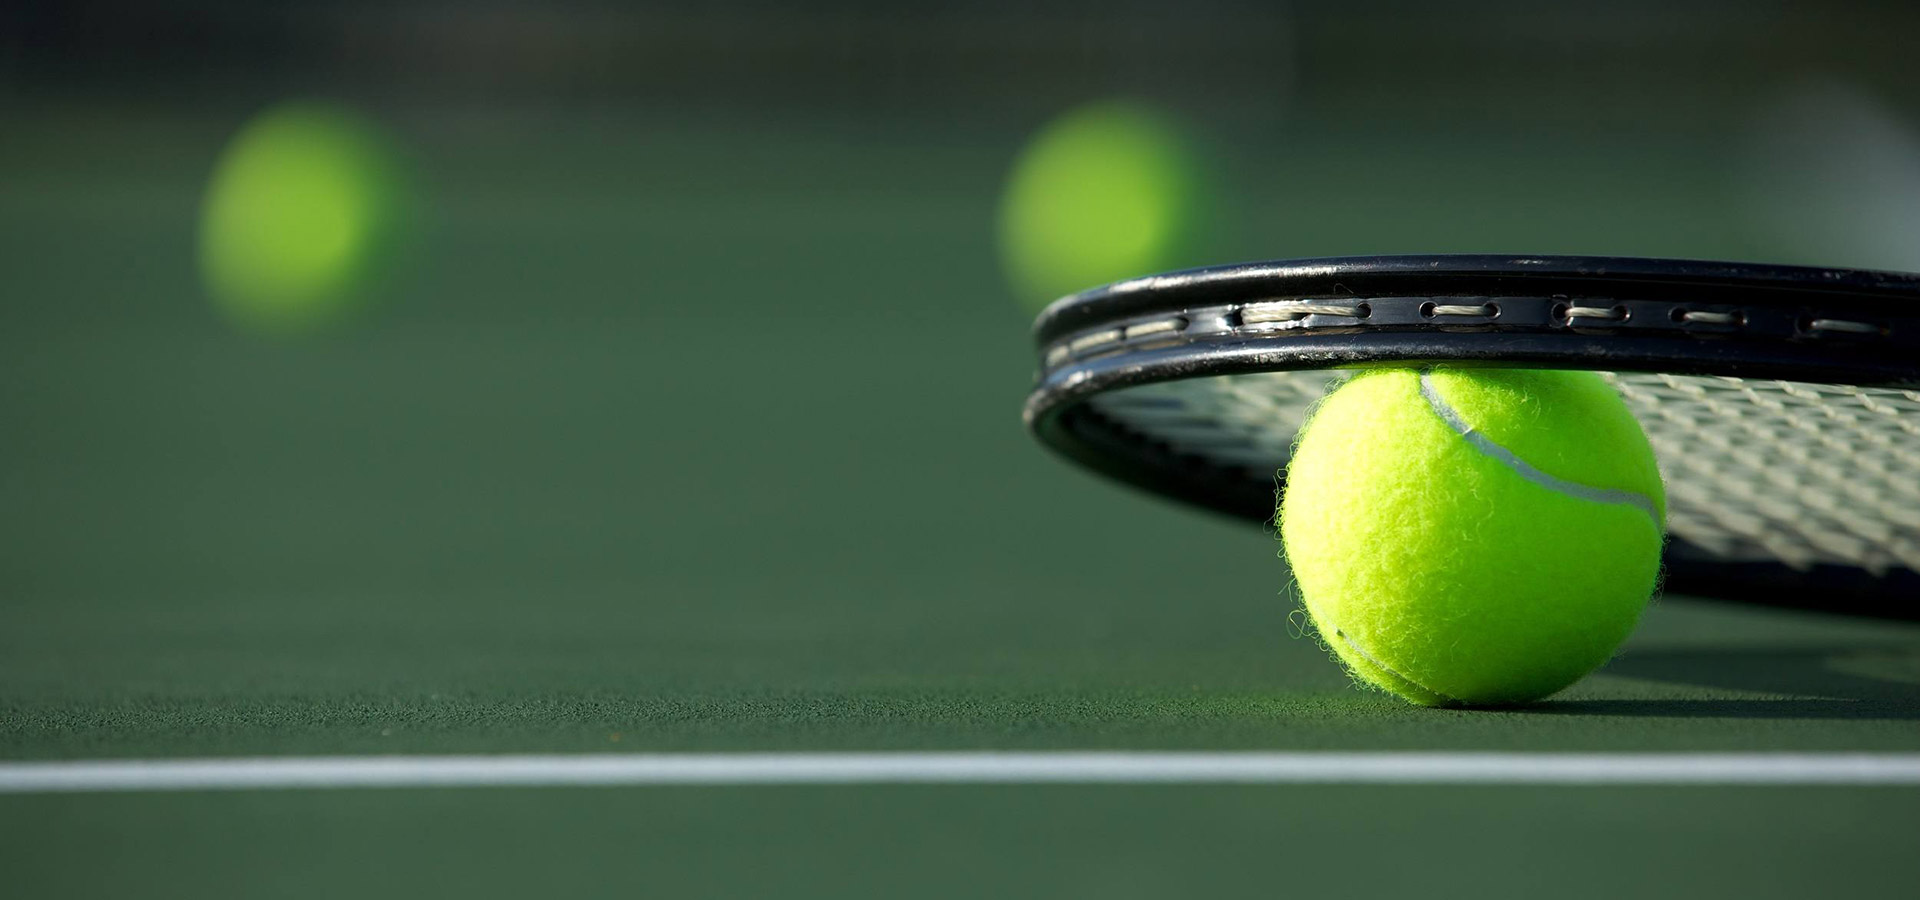 Greater Cincinnati Tennis Coach Association